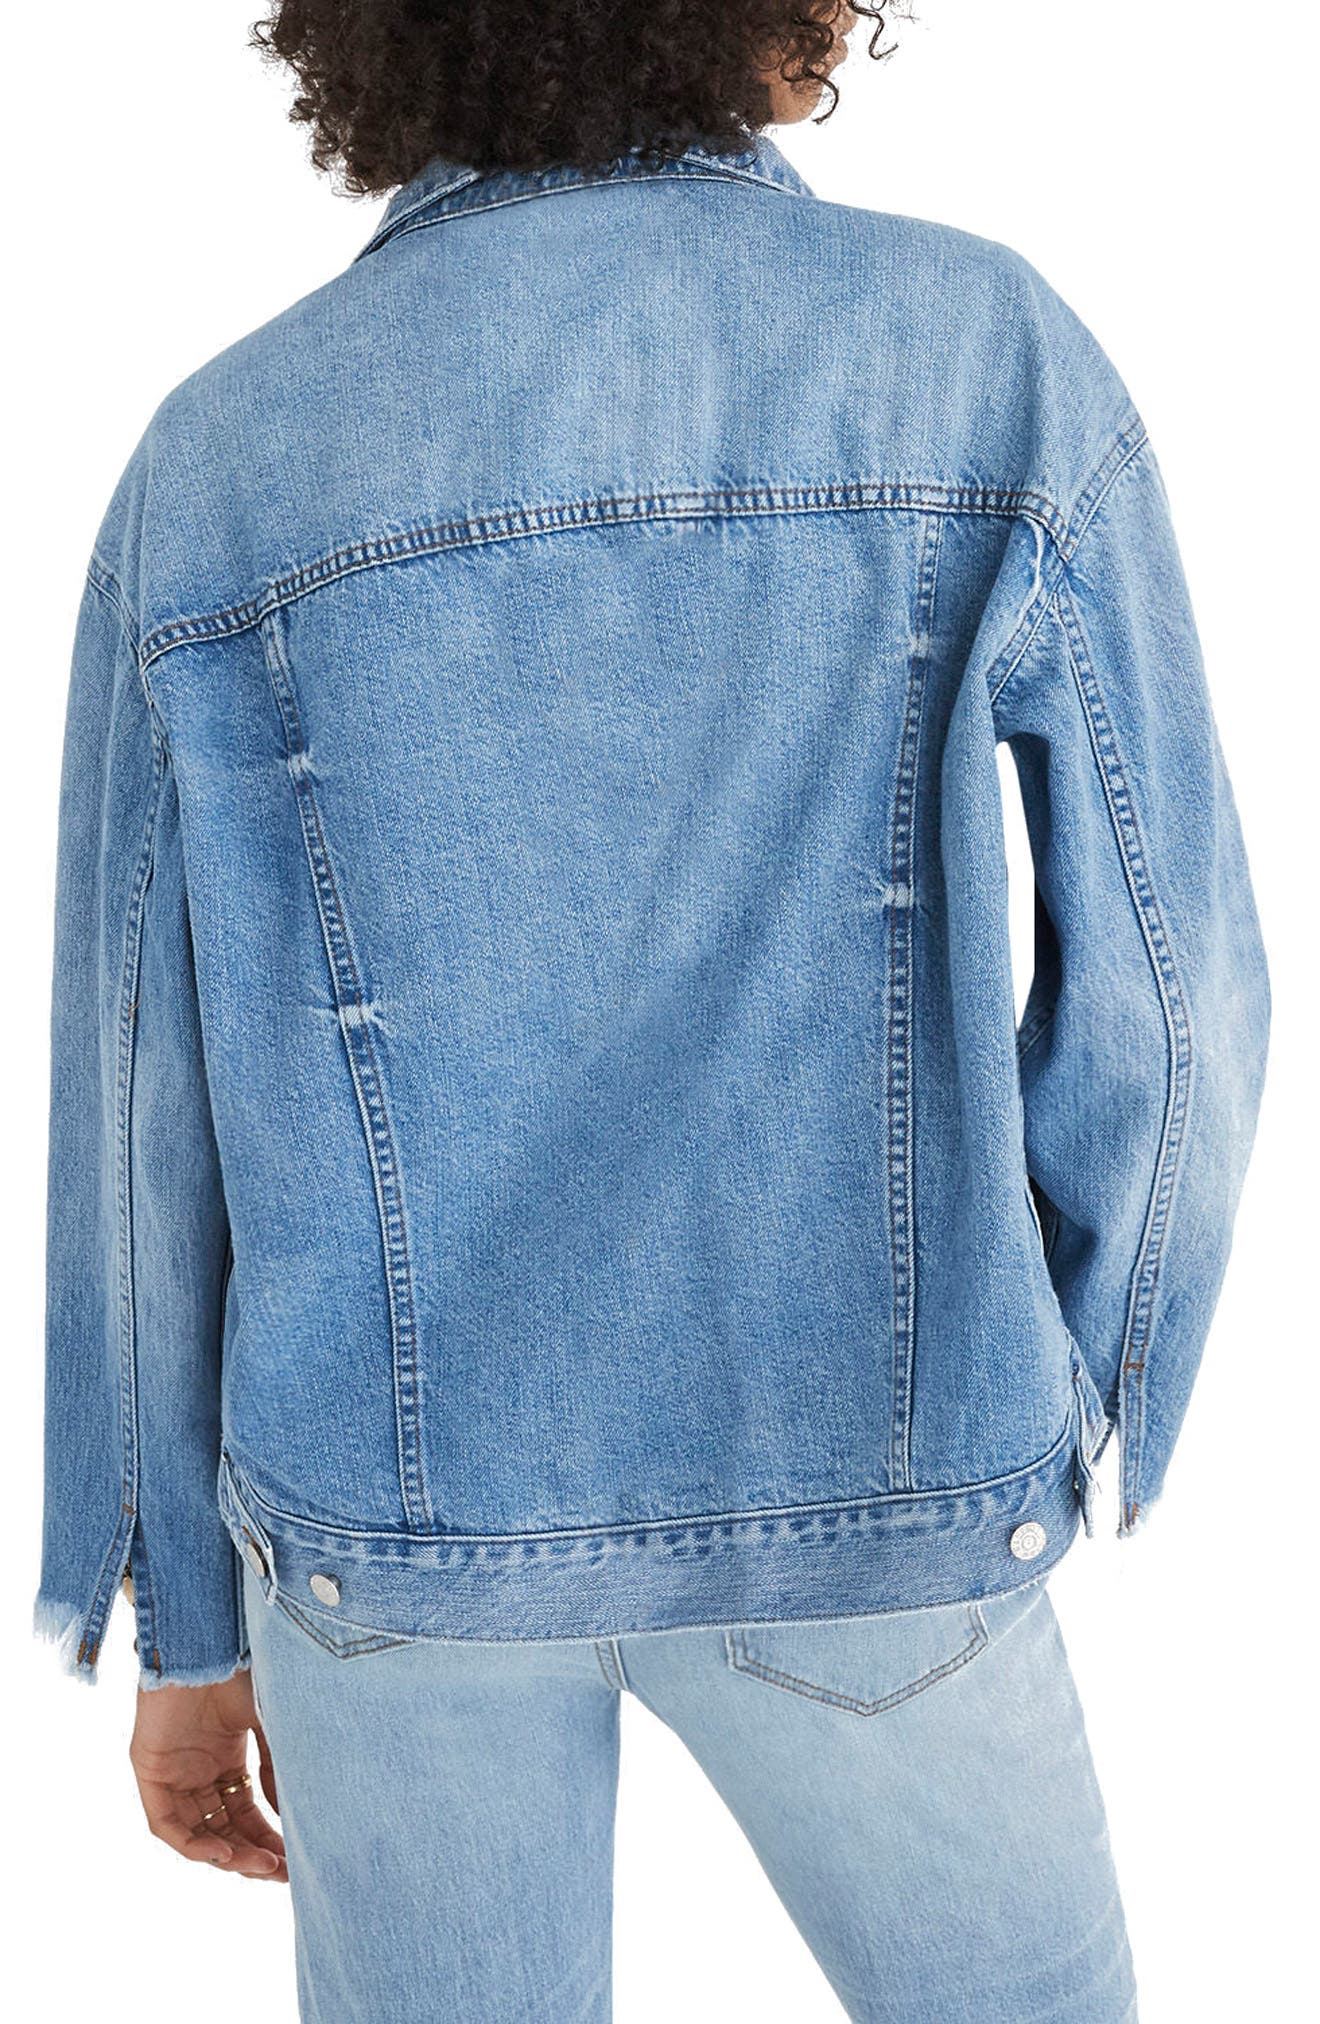 Reconstructed Jean Jacket,                             Alternate thumbnail 2, color,                             400